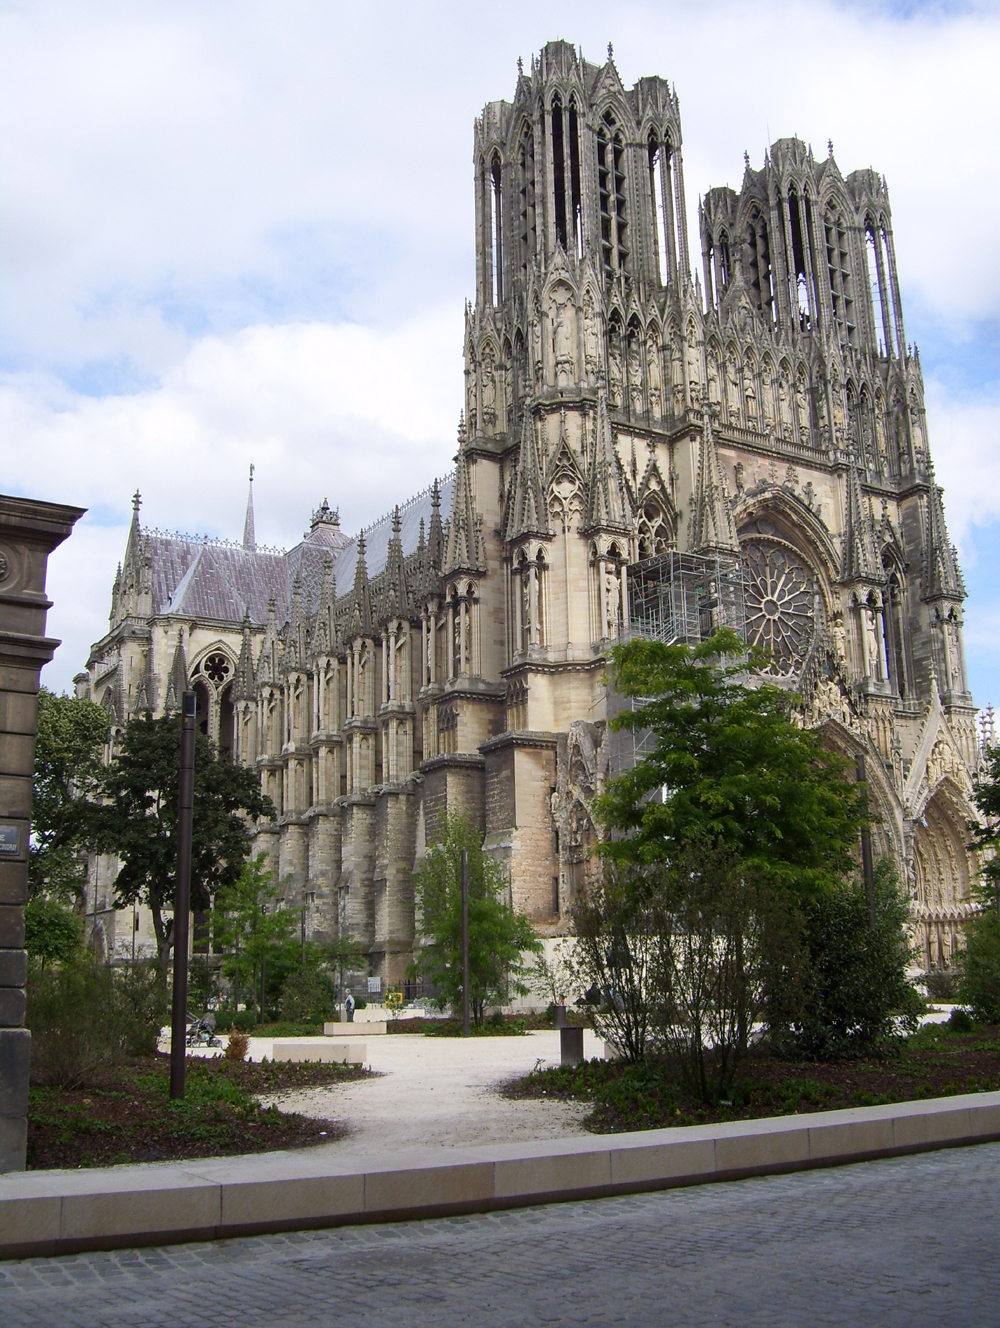 Some impressions of REIMS